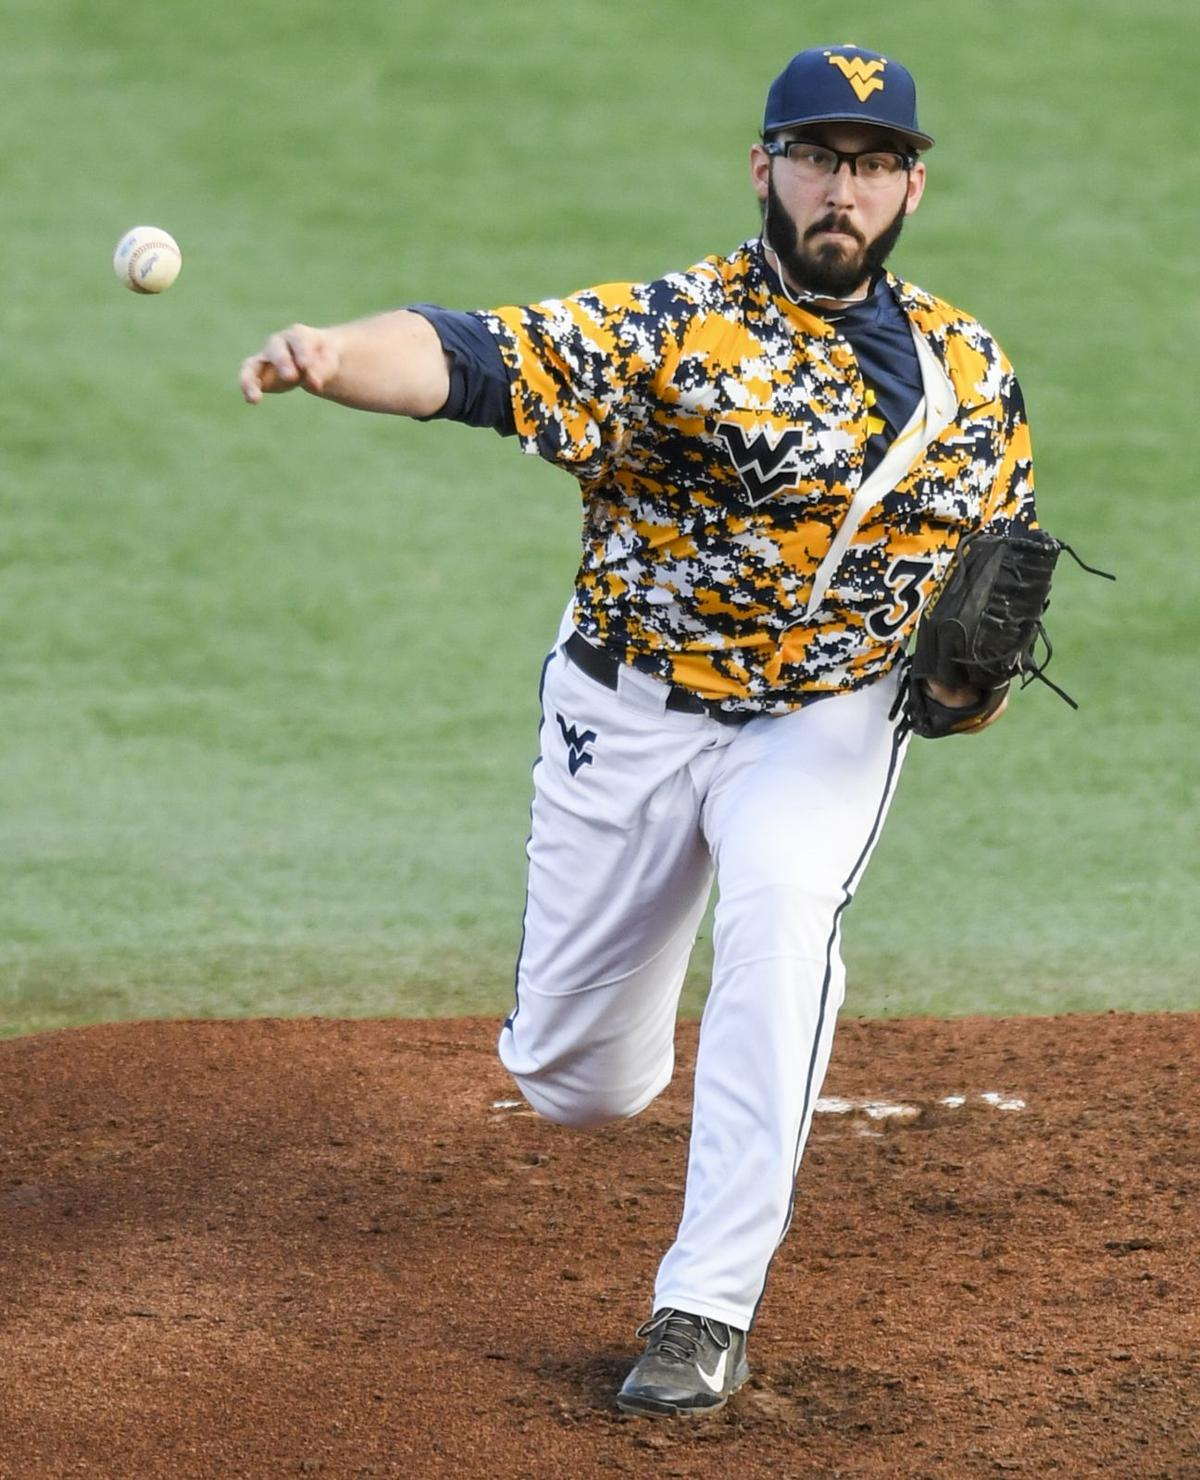 Mike Casazza Pitching Injuries Have Not Derailed WVU Baseball